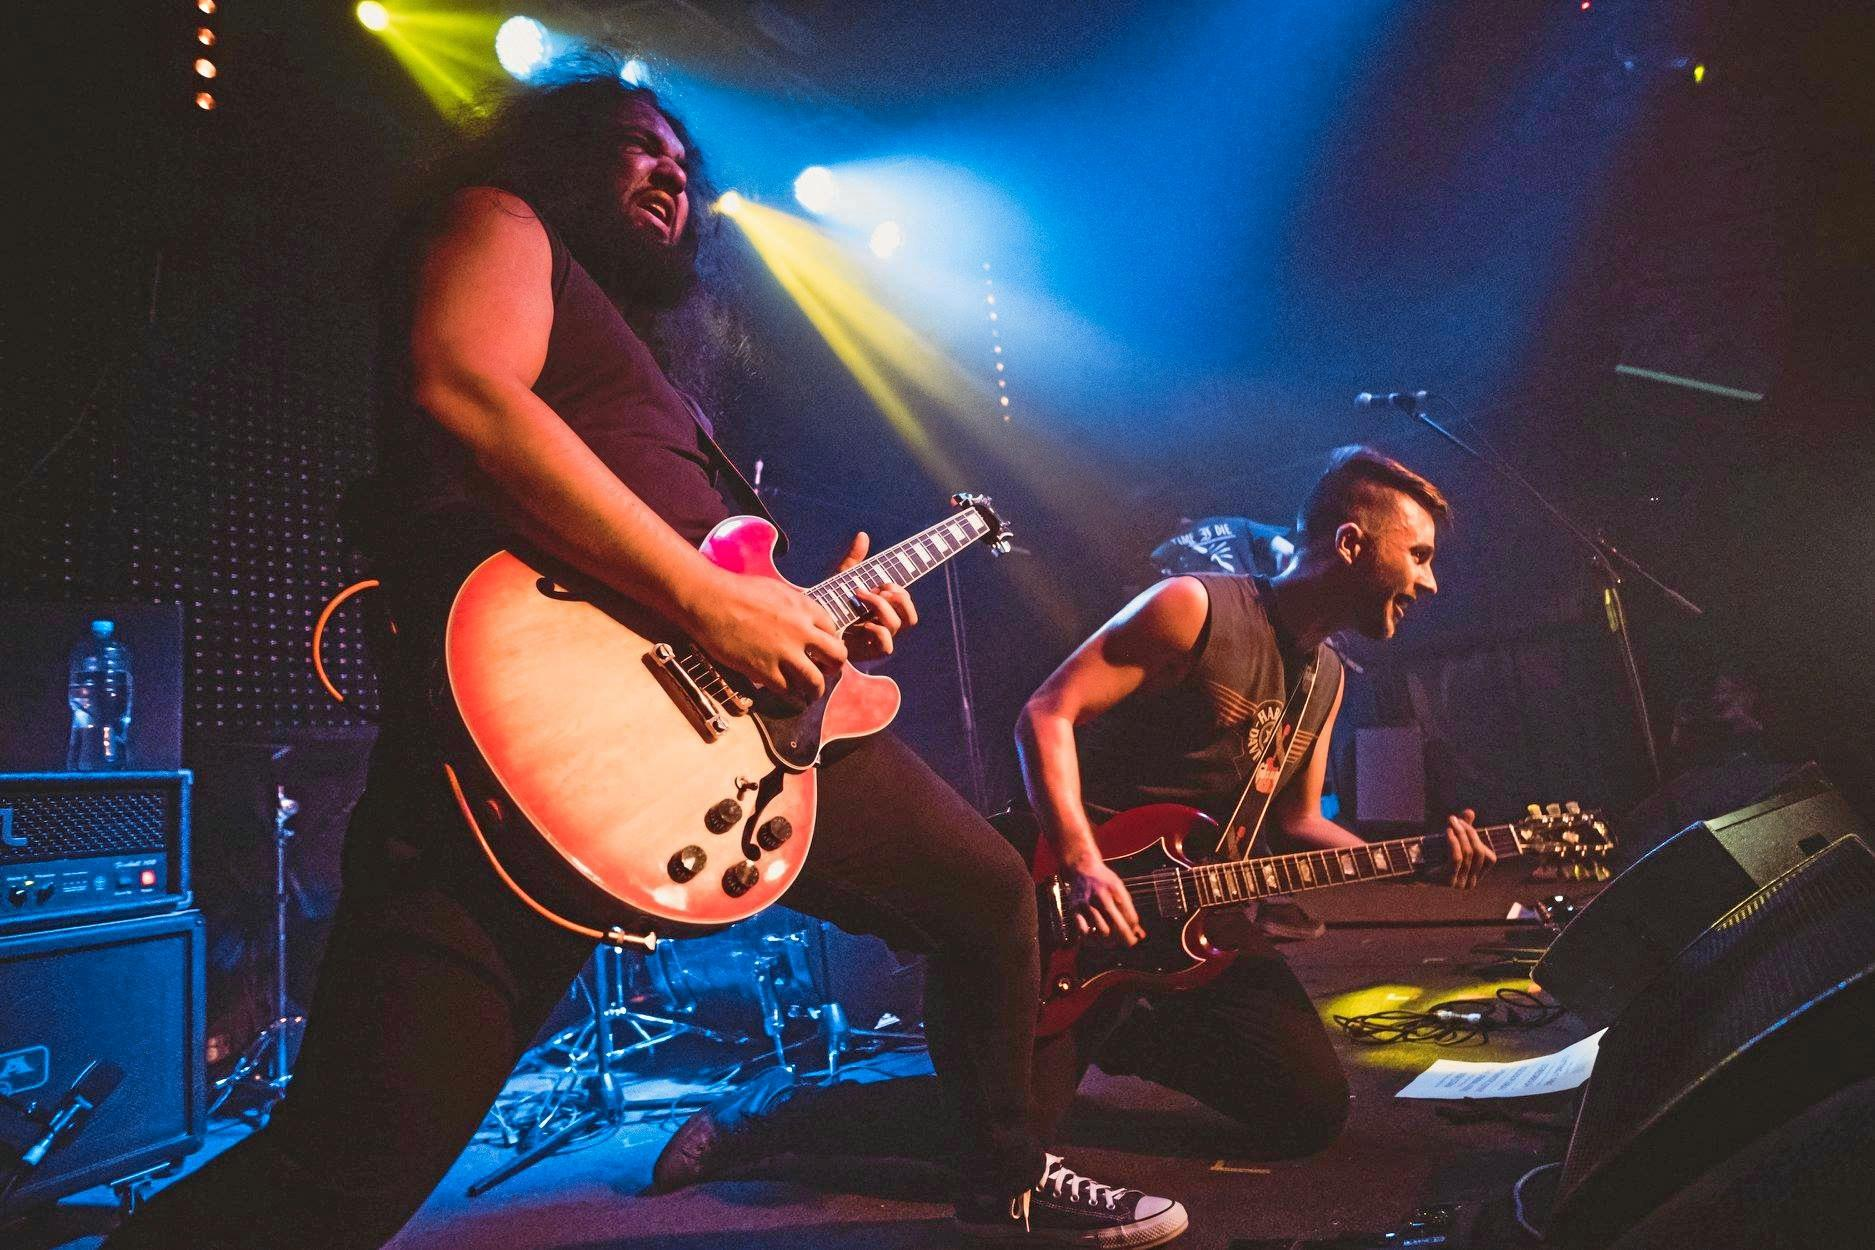 MUSIC IS MEDICINE: Heavy rock performers Eric Moors and Zach Eather are keen to take the Warwick Town Hall by storm when they play as 'Therapist' next Saturday.